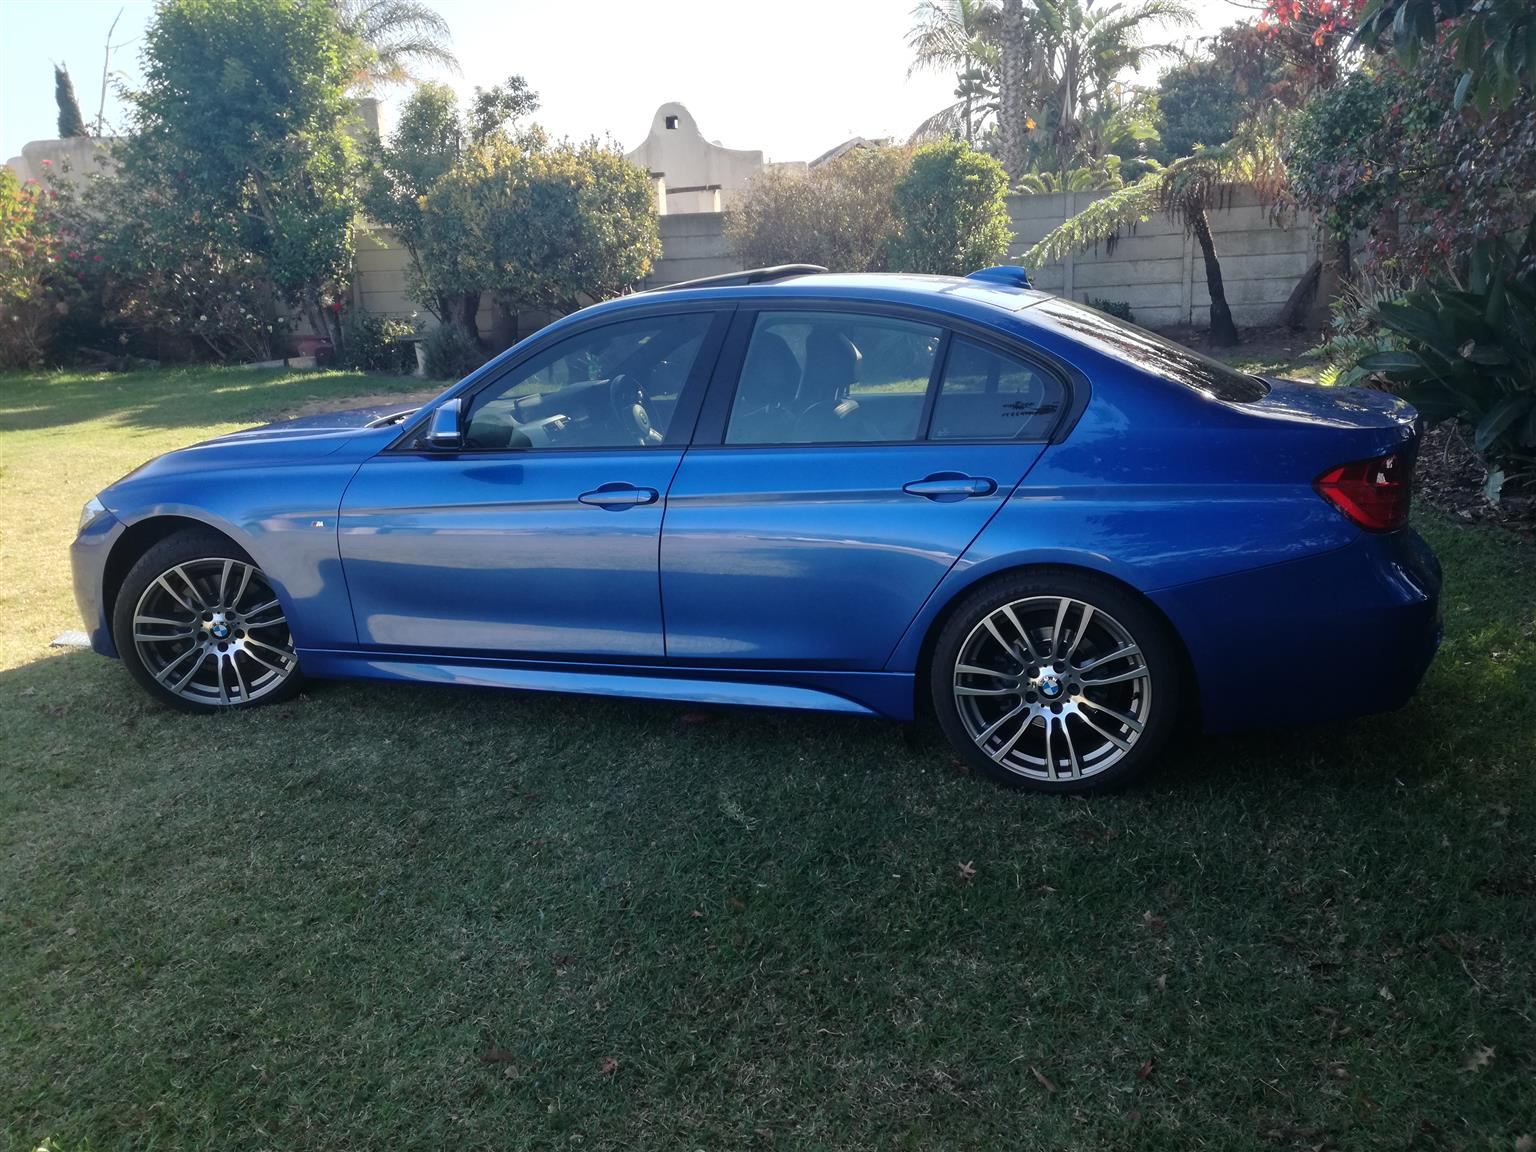 BMW Series I M Sport Sports Auto Junk Mail - 2014 bmw 328i m sport